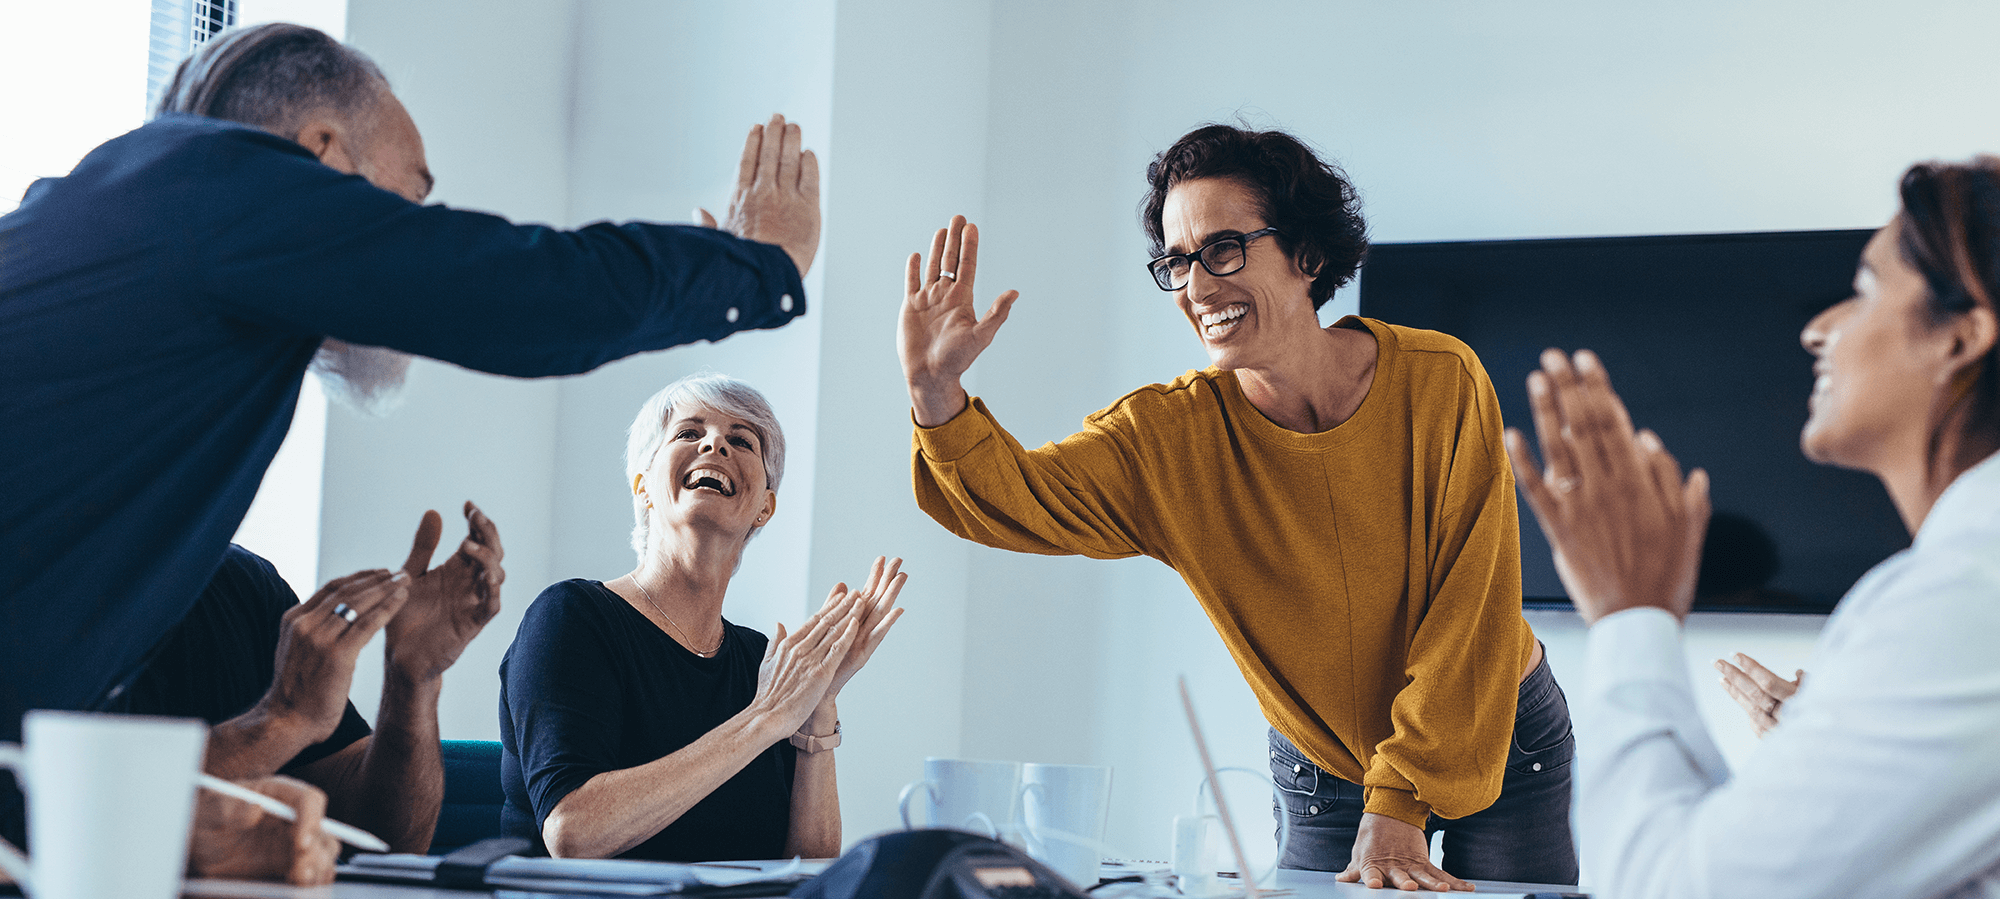 Group of colleagues in meeting celebrating and giving high-fives